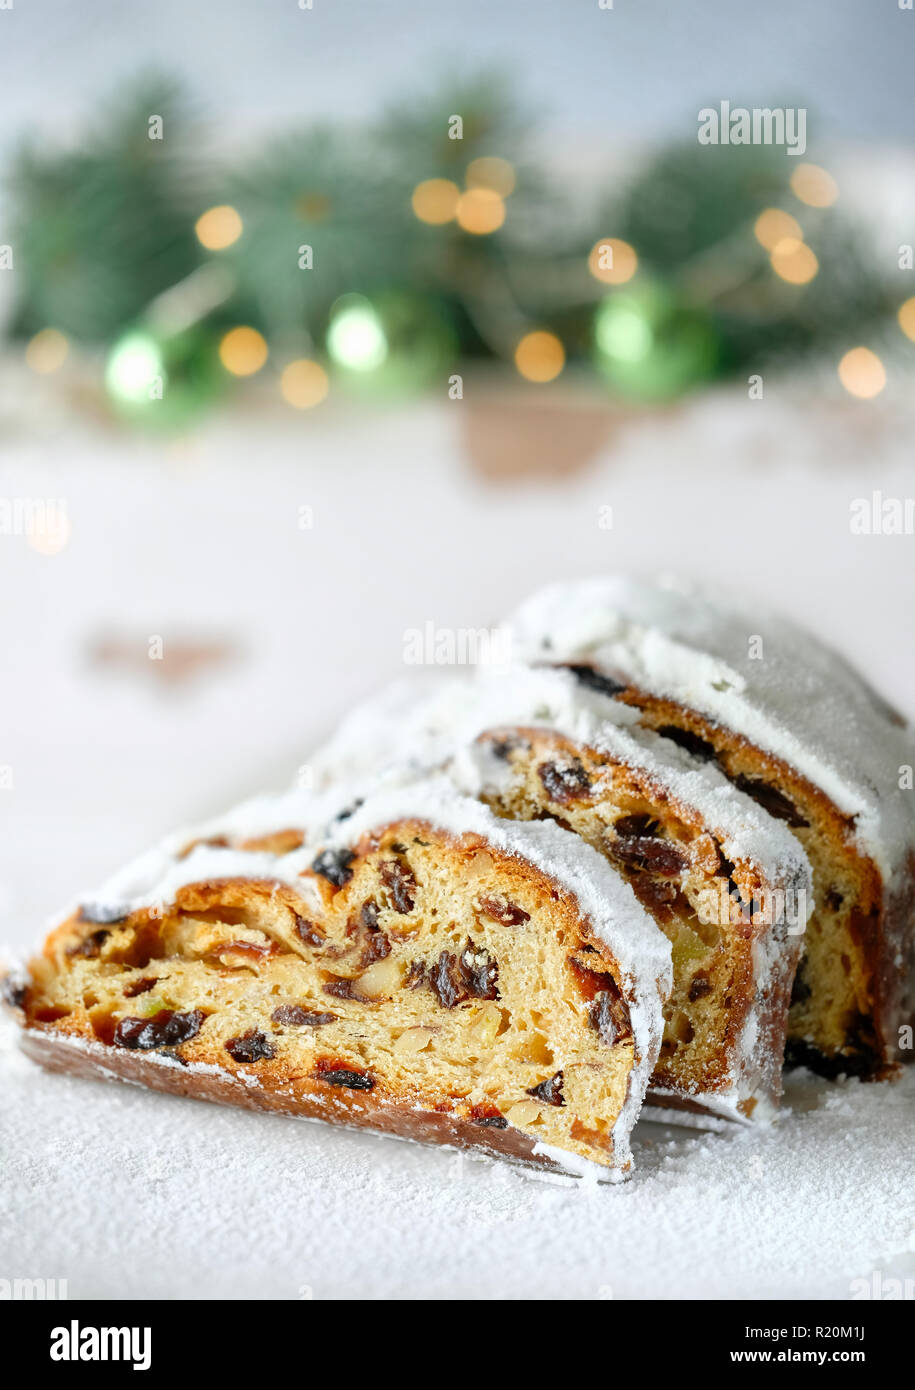 Christmas stollen on white festive background with fir twigs and trinkets. Traditional German dessert for Christmas celebration. - Stock Image